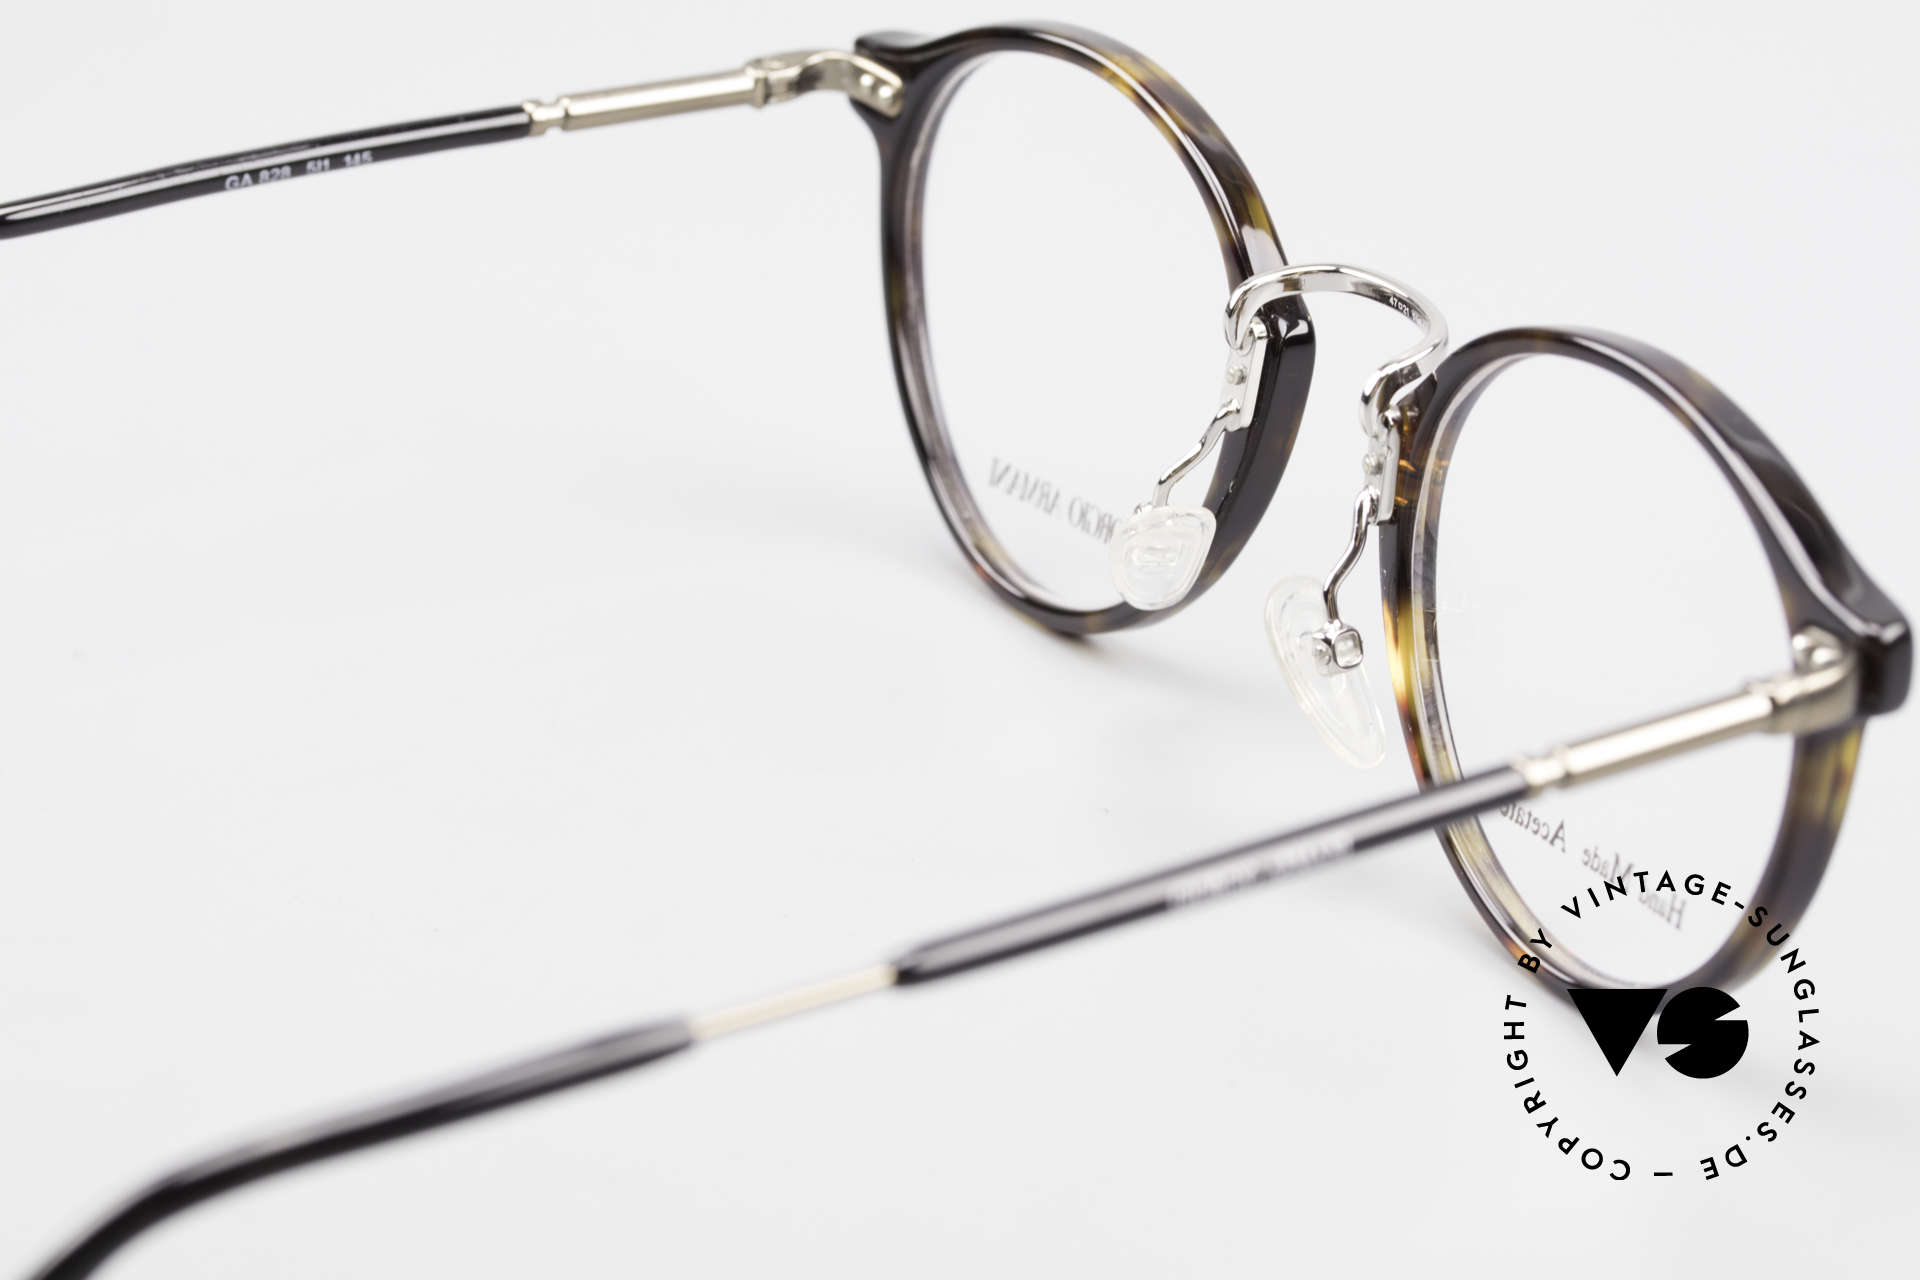 Giorgio Armani 828 Round Panto Eyeglass-Frame, frame can be glazed with optical lenses of any kind, Made for Men and Women